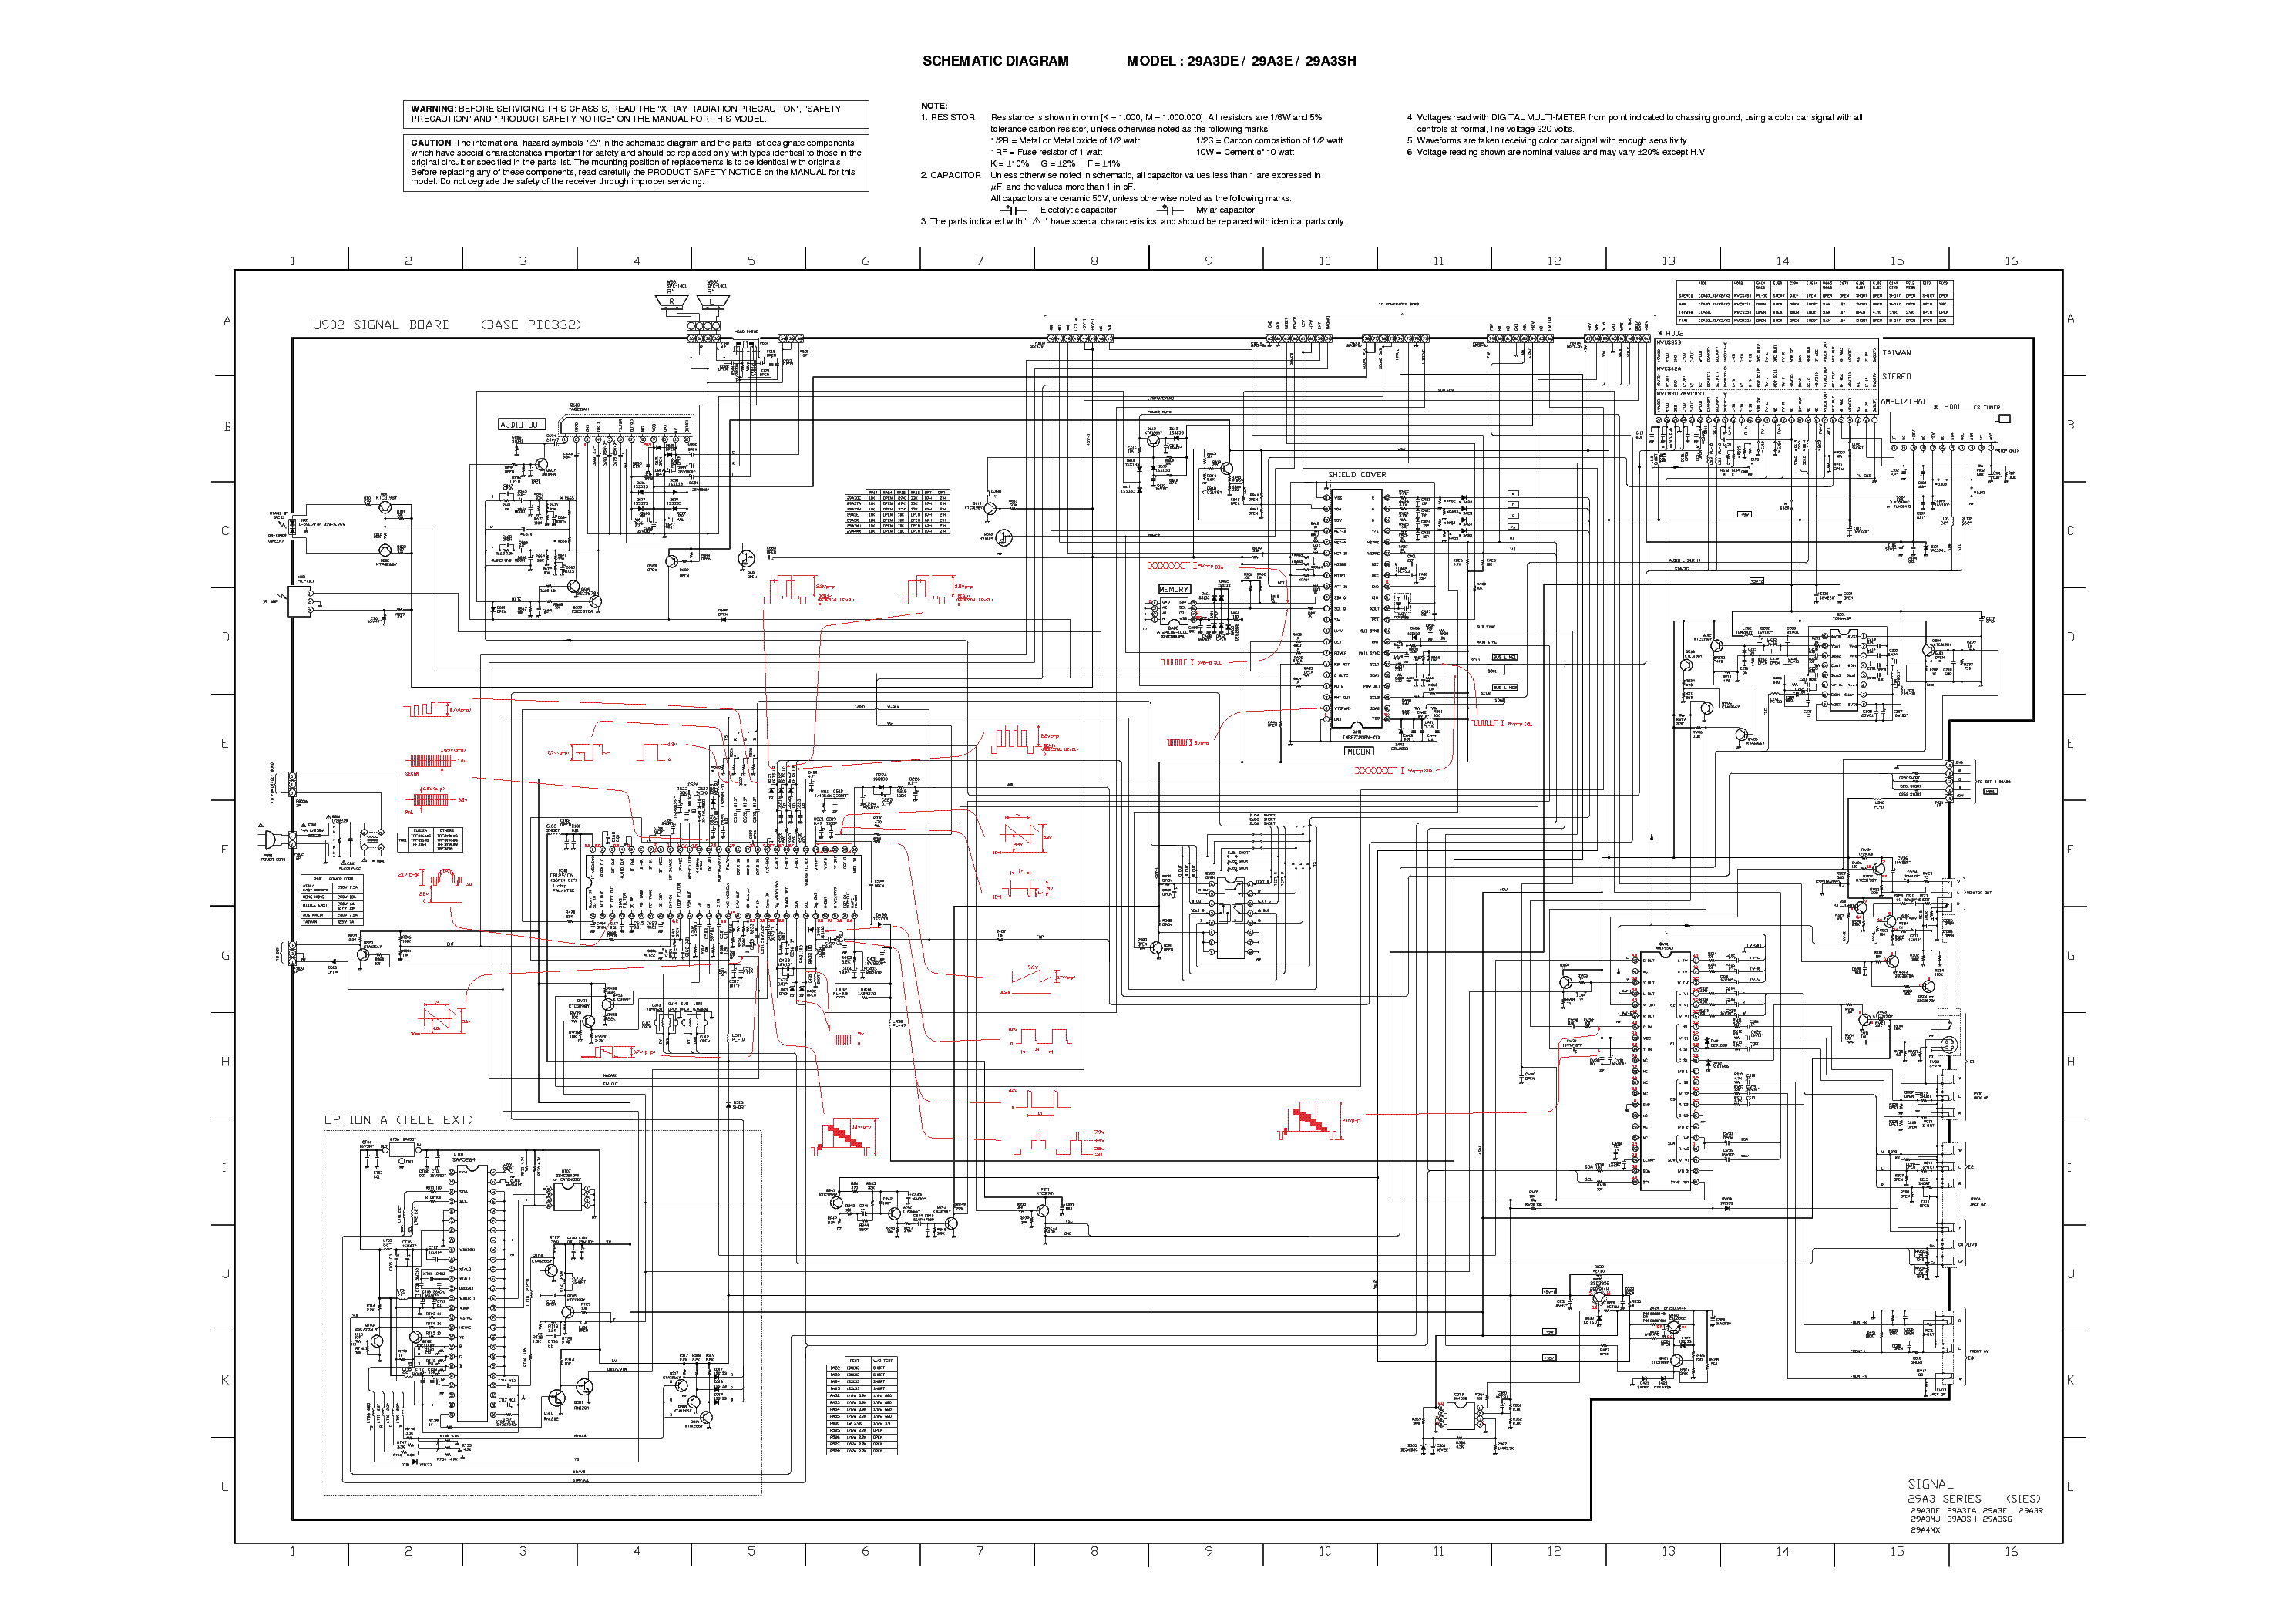 toshiba 29a3-chassis-s1es service manual download ... circuit board labeled diagram of a toshiba tv labeled diagram of a bomb